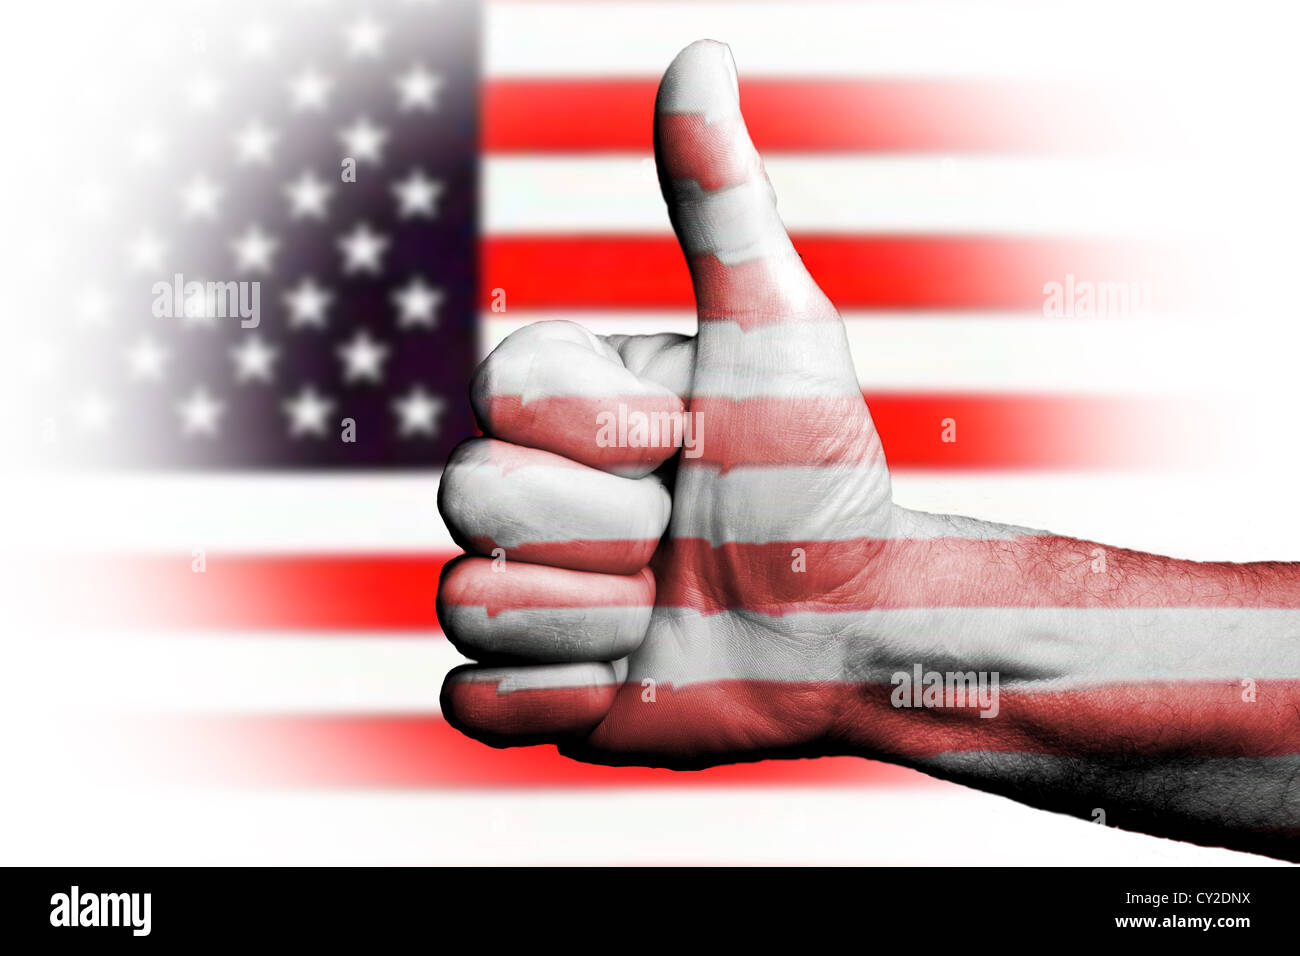 Thumbs up for to America USA Americans, sporting metaphor we are going to win prevail,vote of confidence for country - Stock Image